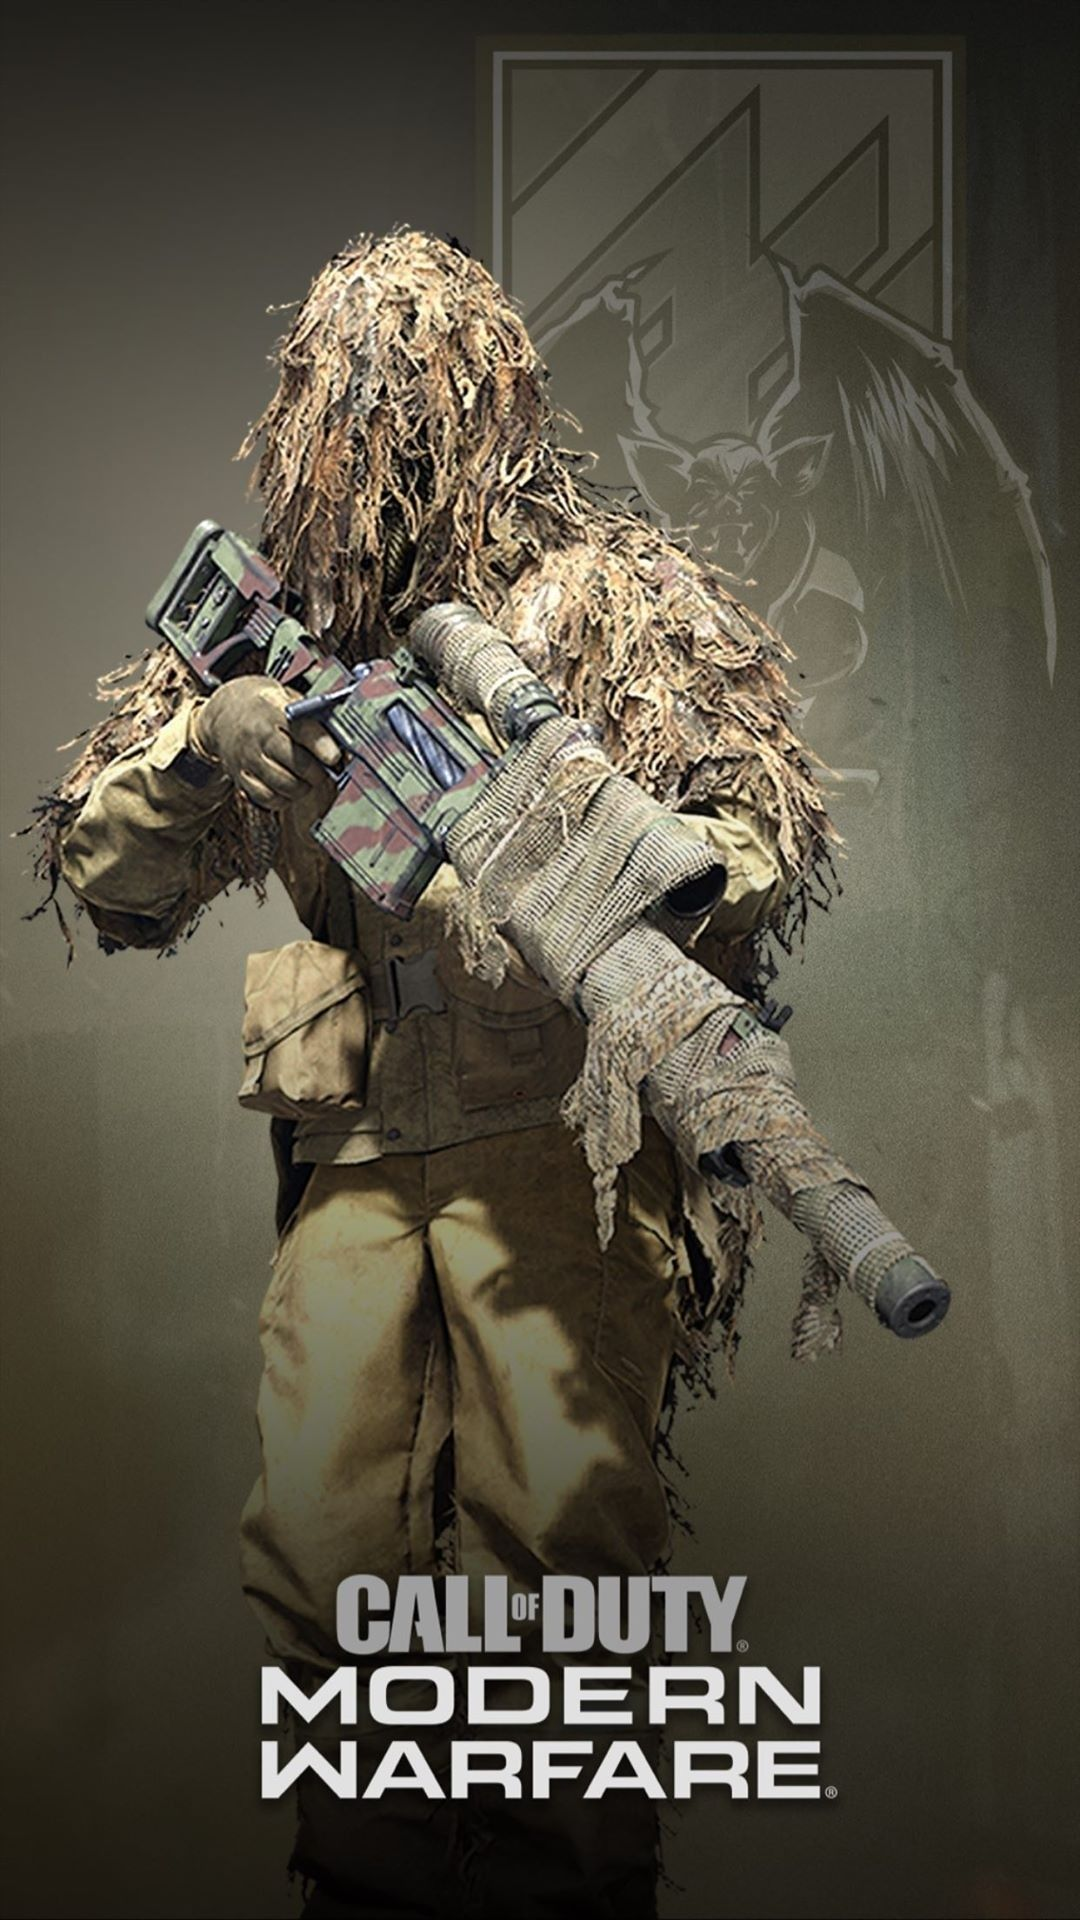 Pin By The Srepeme Leonard On Call Of Duty Modern Warfare Call Of Duty Warfare Call Of Duty